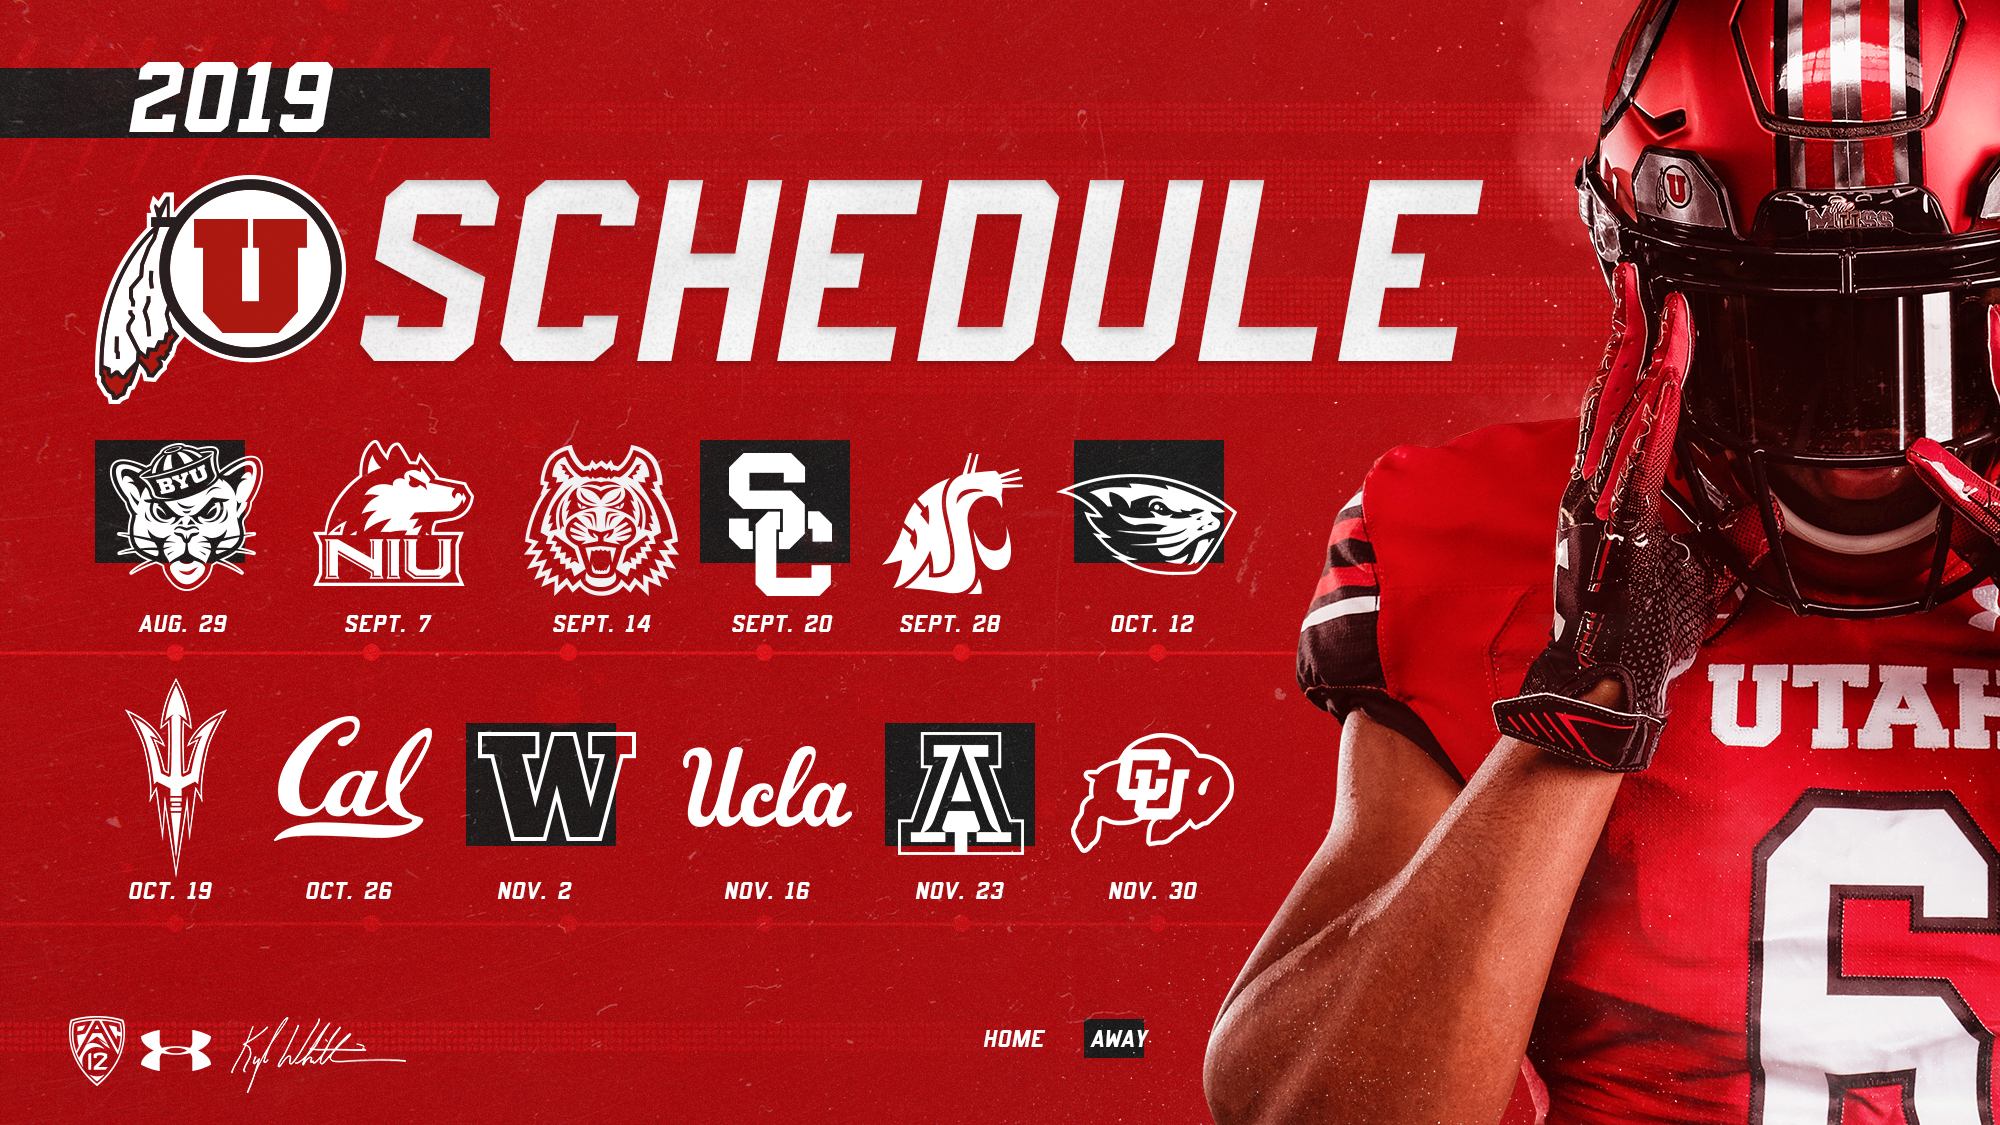 Wsu Football Schedule 2019 2019 Utah Football Schedule is Announced   University of Utah